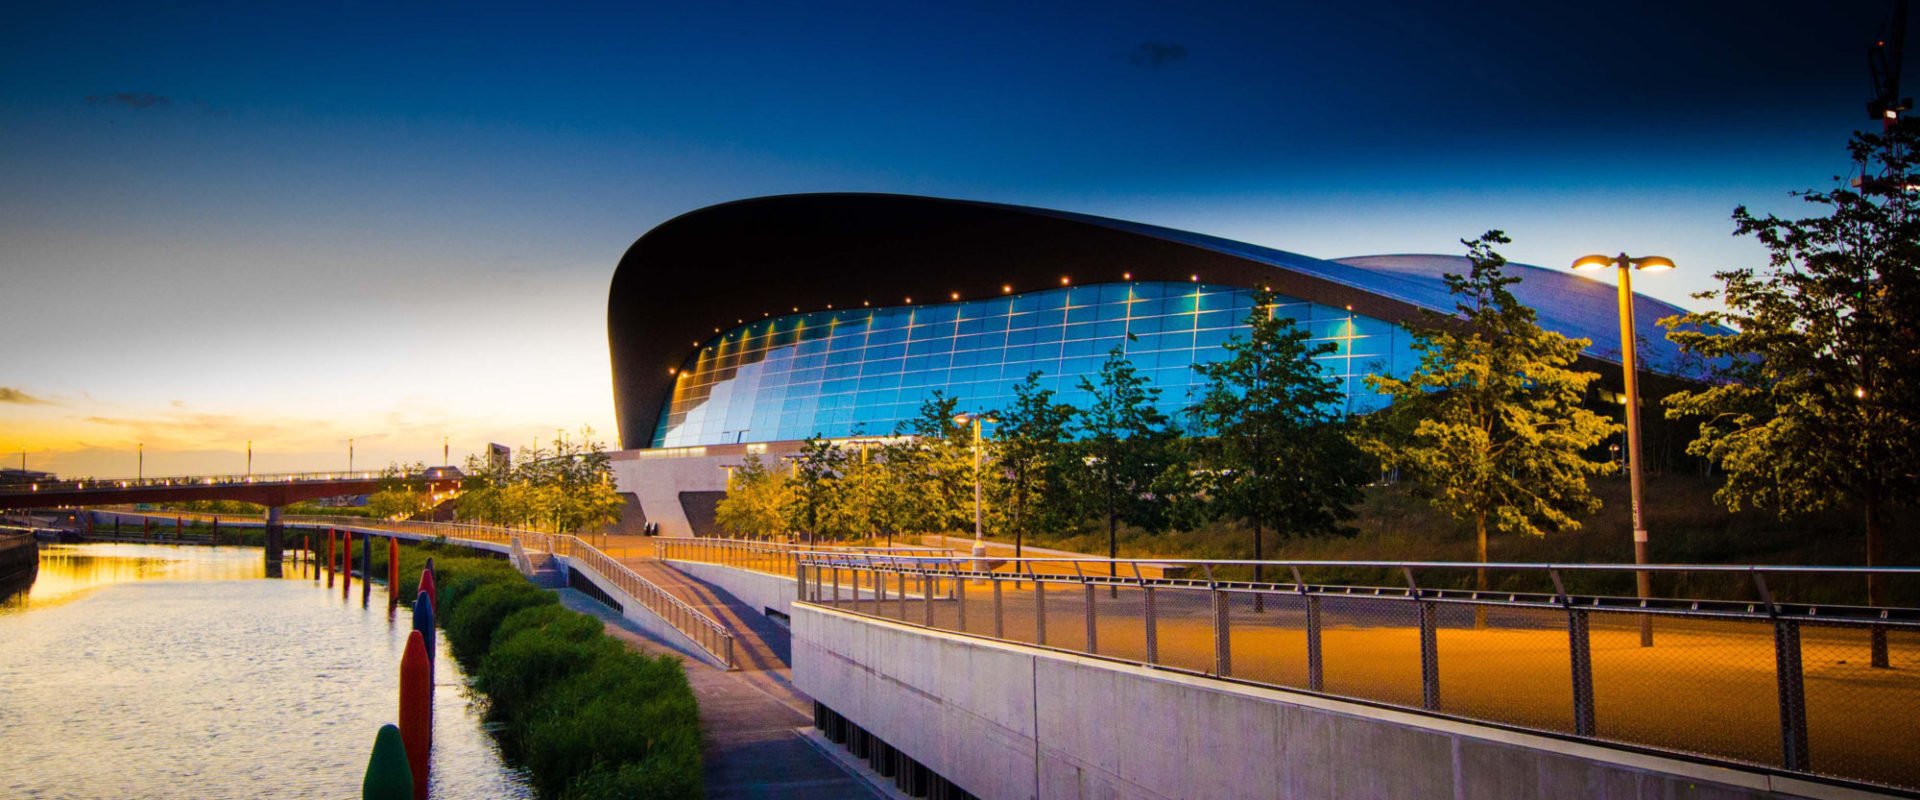 SILVER CLOUD PHOTOGRAPHY.CO.UK_ ARCHITECTURAL INTERIORS_EXTERIOR PROPERTY PHOTOGRAPHERS_READING_LONDON_SOUTH OF ENGLAND_LONDON AQUATICS CENTRE_OLYMPIC PARK.pg